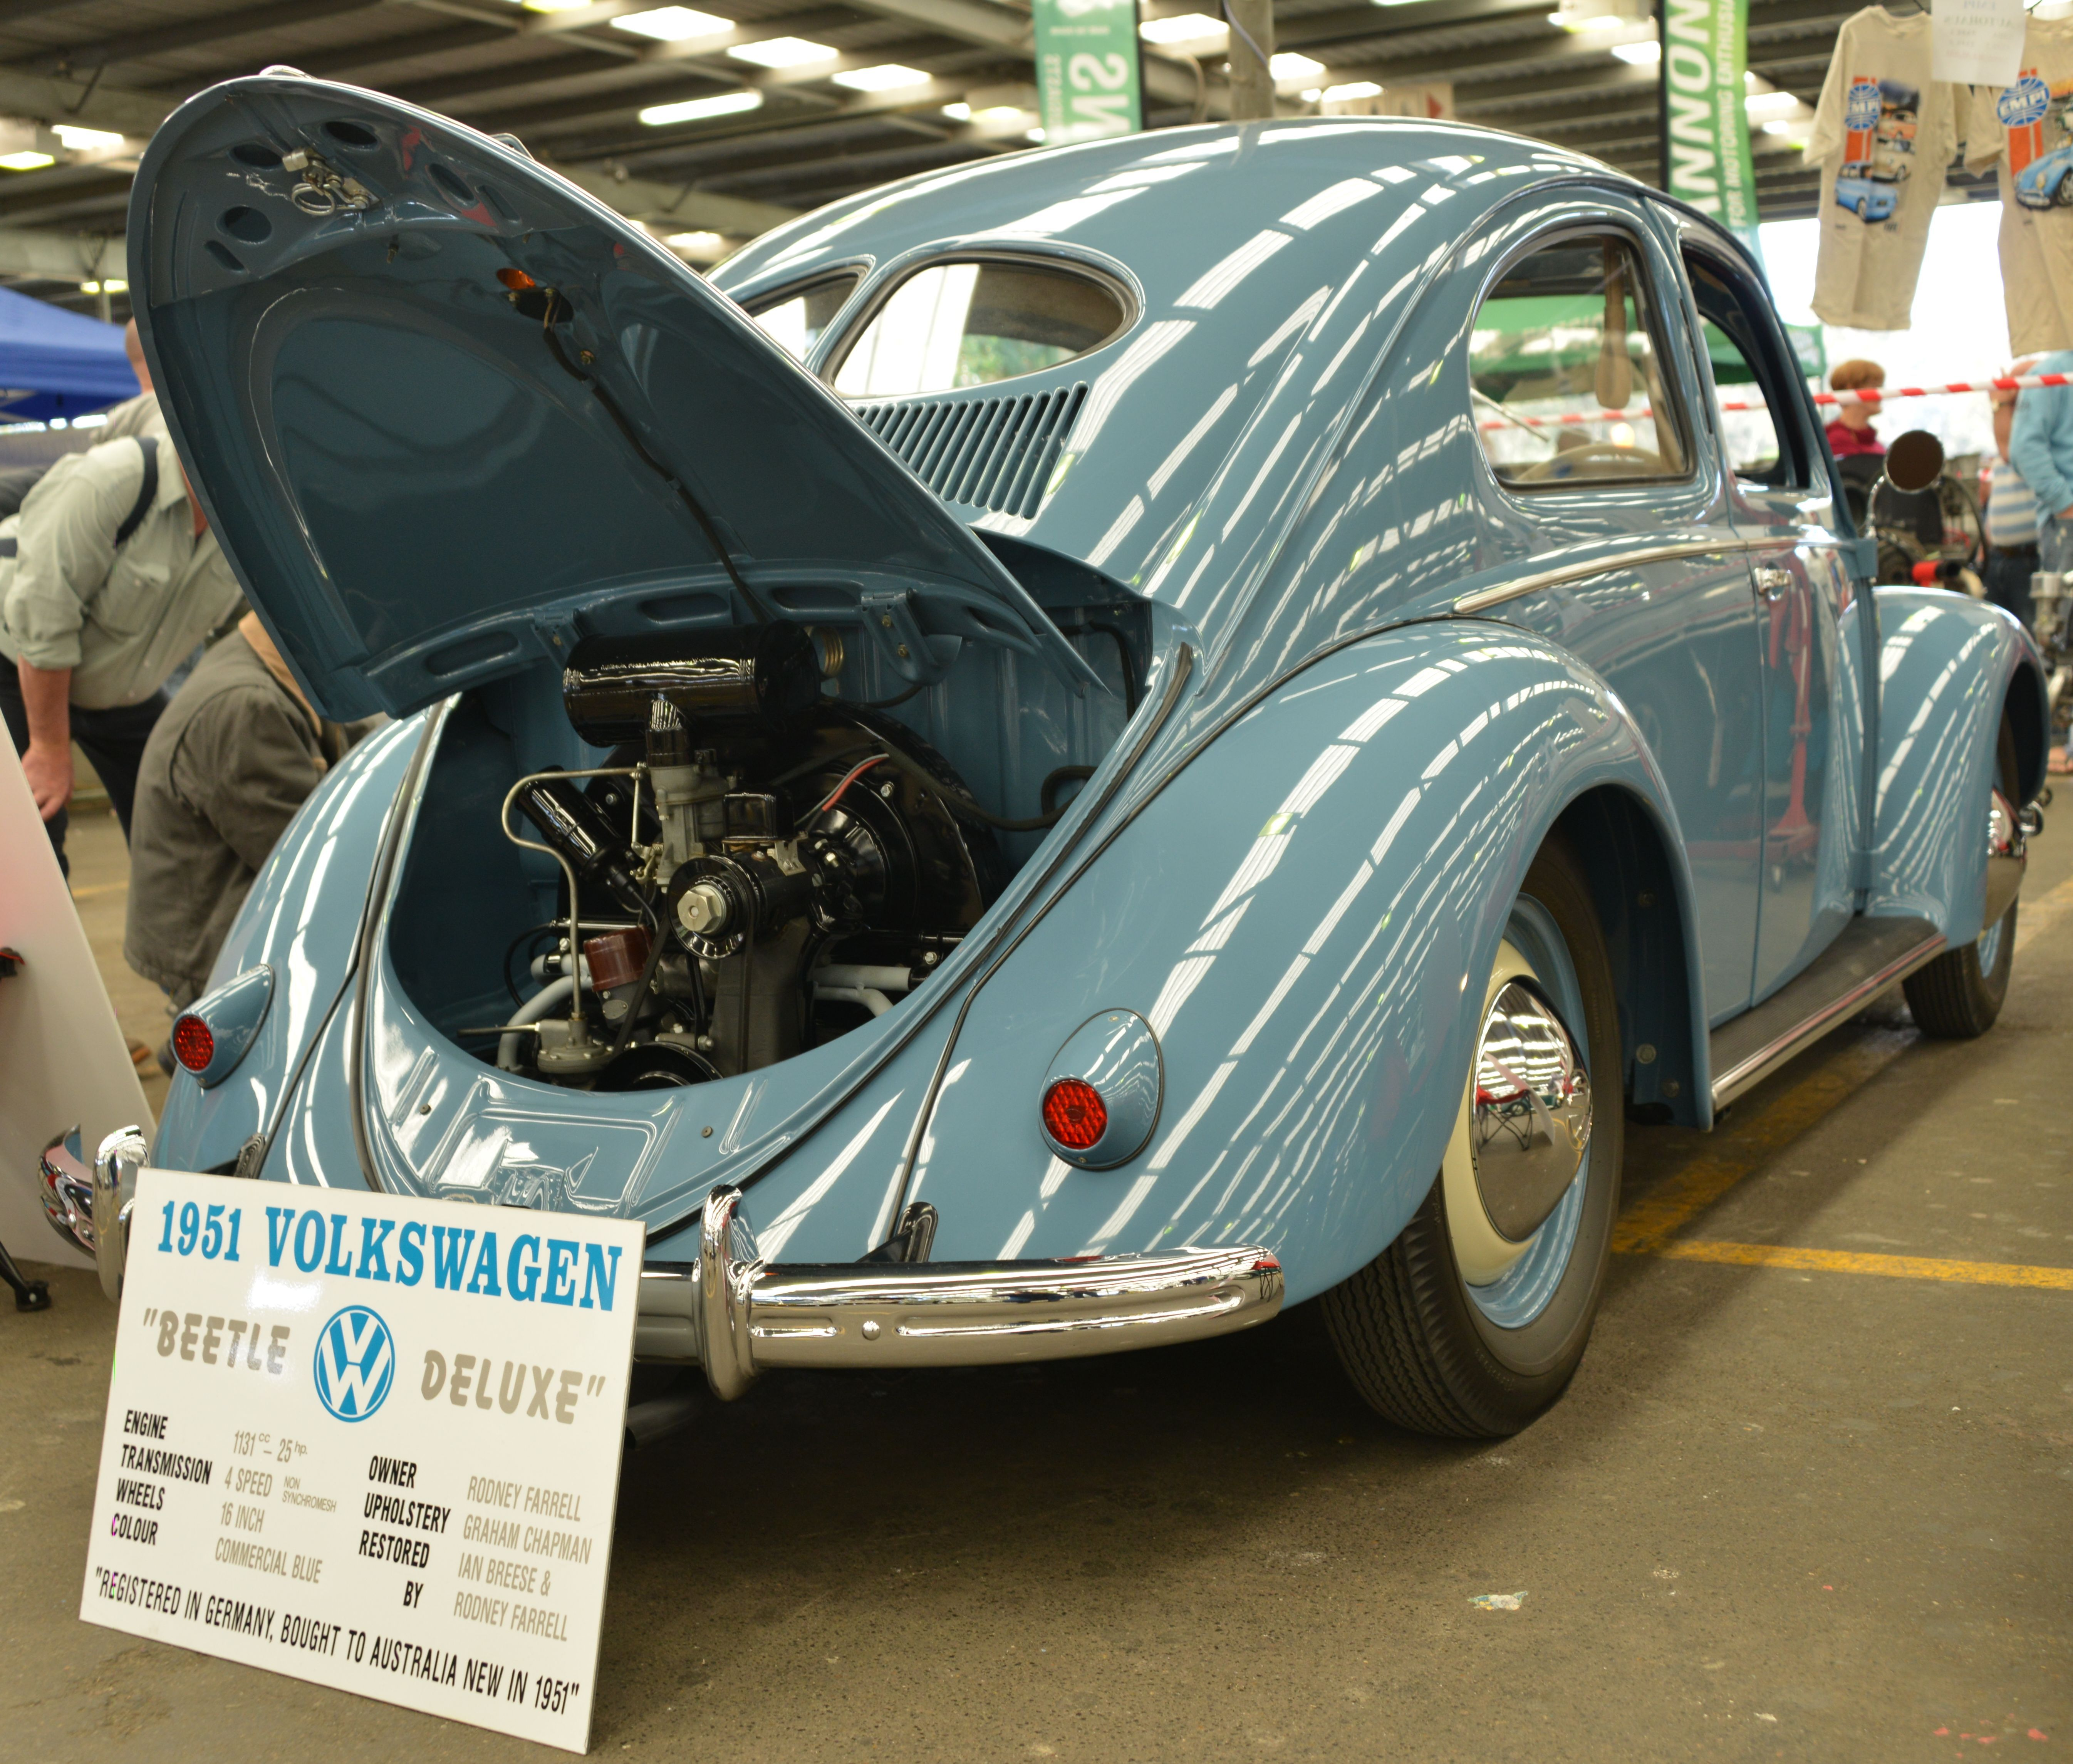 51\' model one of the first few privately imported into Australia ...